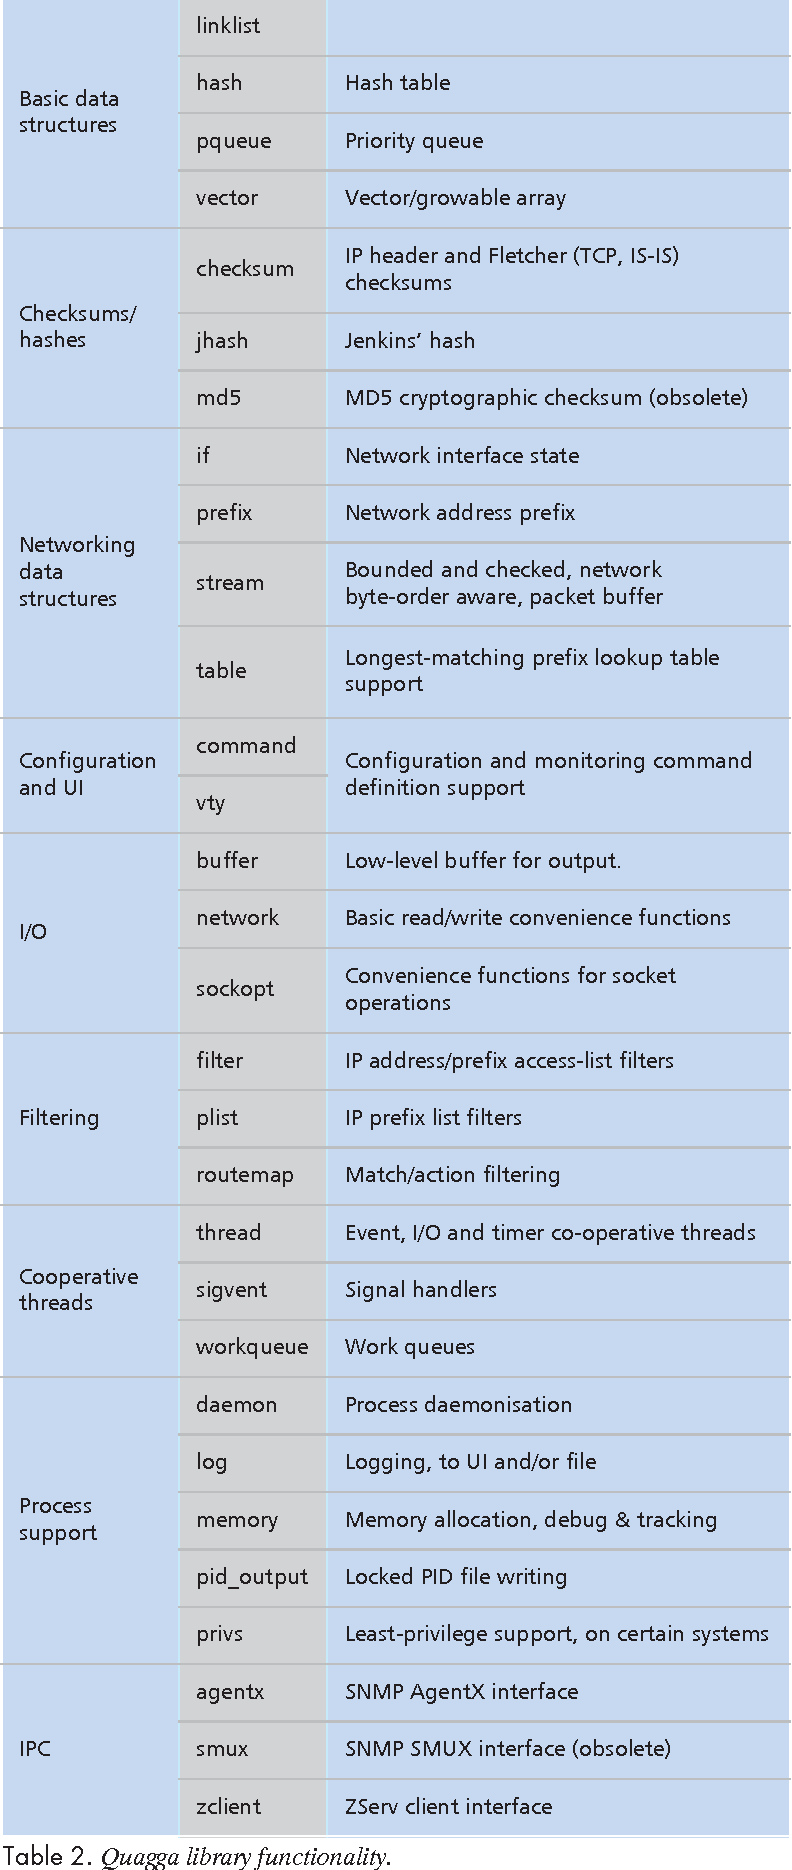 Table 2 from Introduction to the quagga routing suite